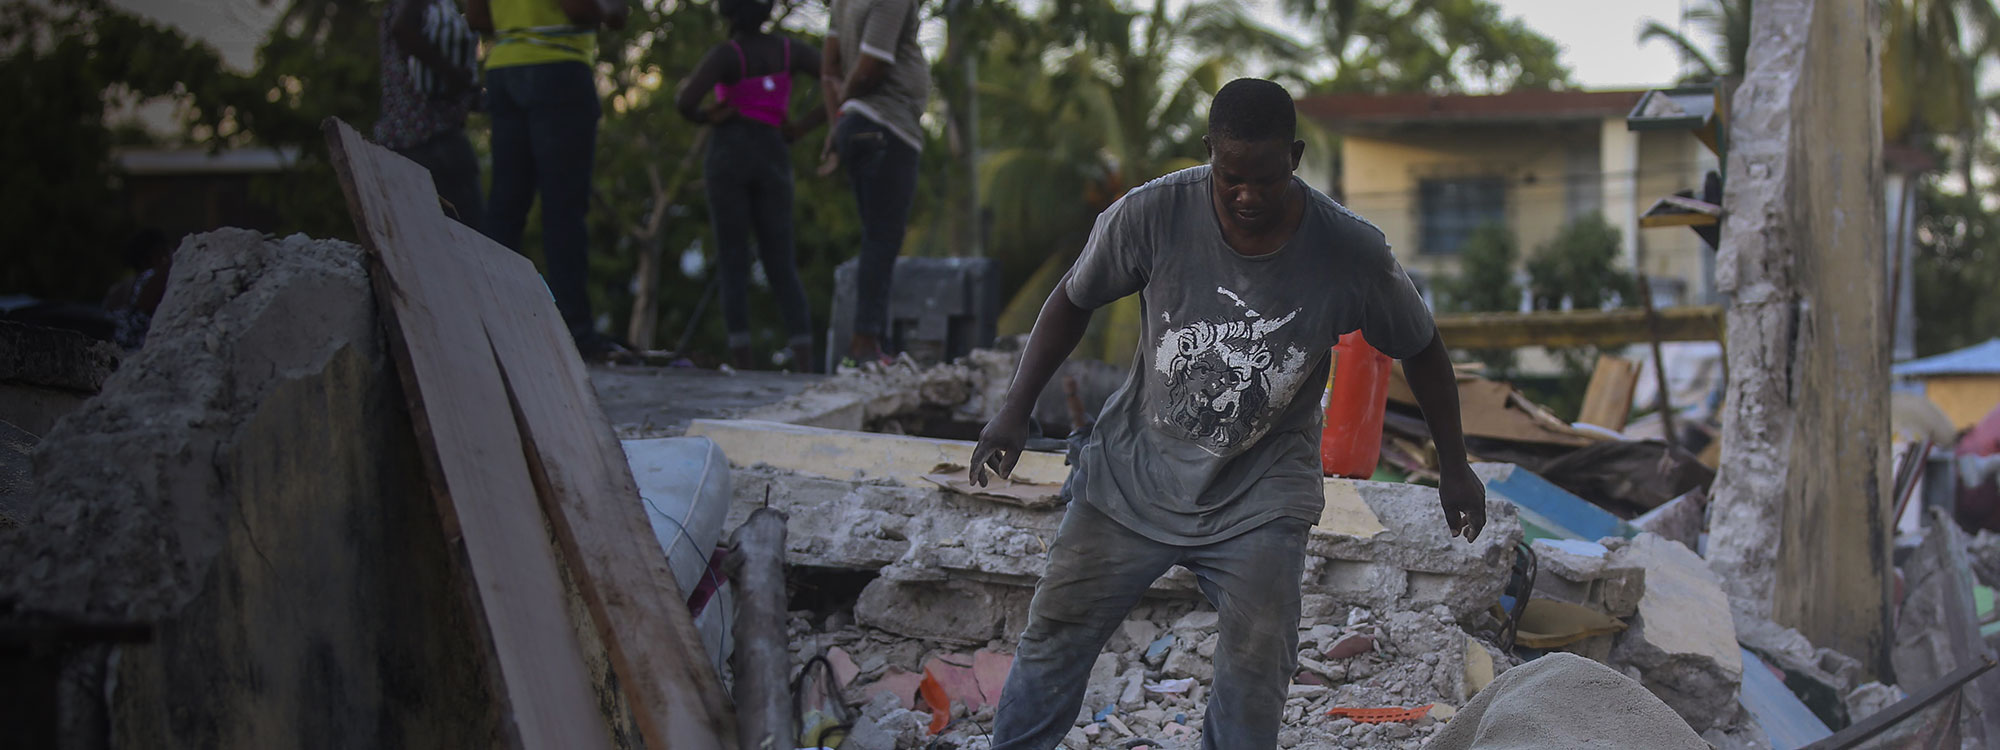 Earthquake, Les Cayes, Haiti 14-Aug-2021. Man tries to recover belongings from his home destroyed by the earthquake. Joseph Odelyn AP Shutterstock